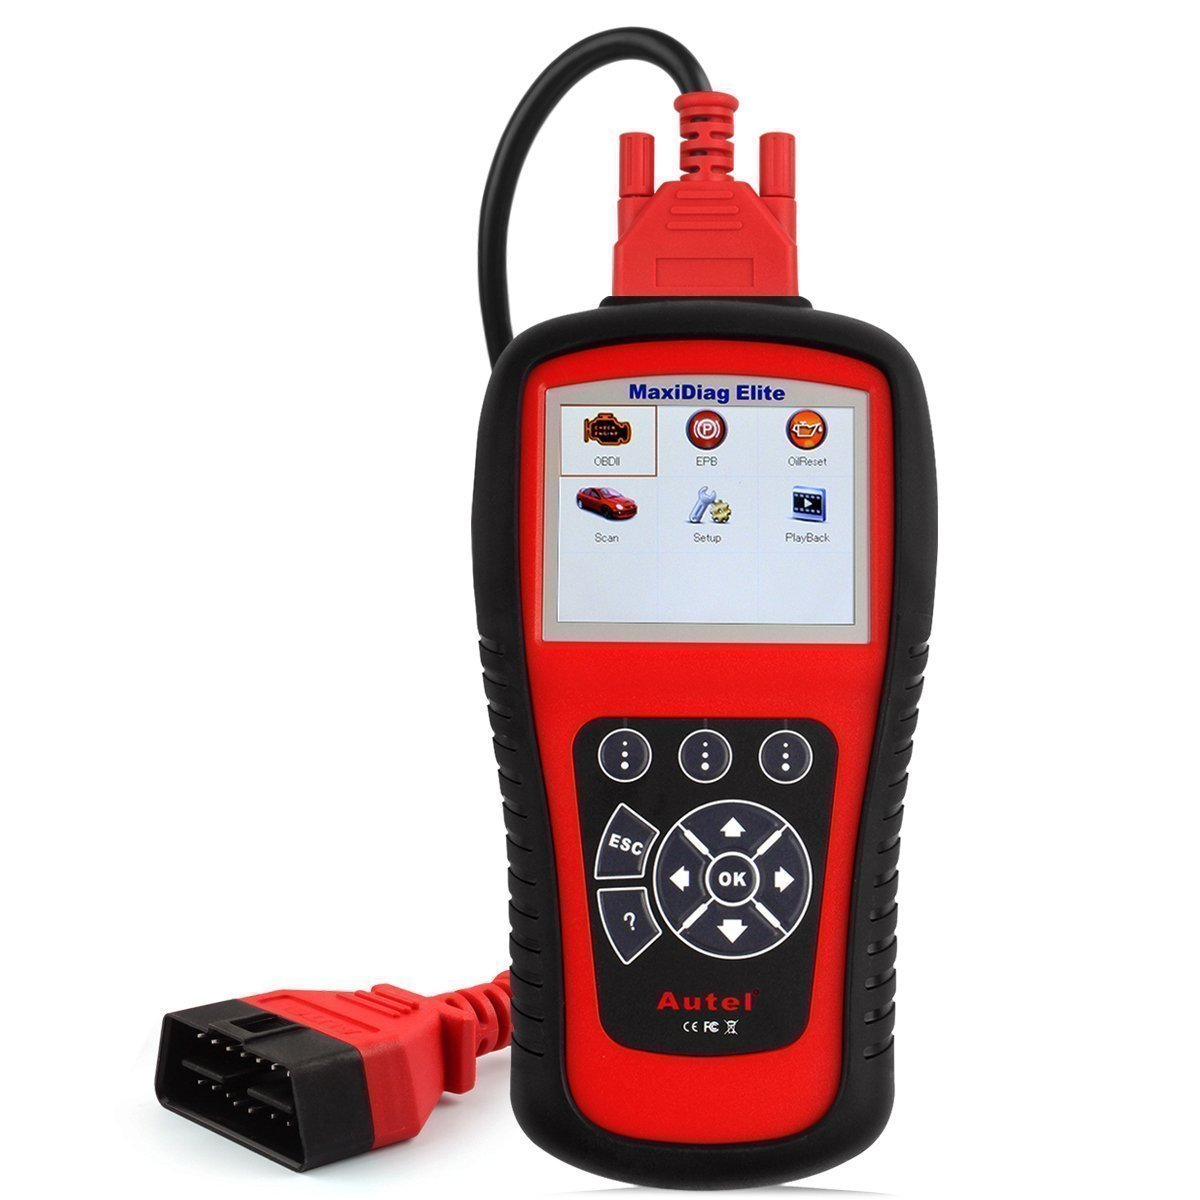 Autel Professional Scan Tool MaxiDiag Elite MD802, OBD2 Car Code Reader for All Systems, Car Diagnostic Scanner for All Electronic Modules (Engine, Transmission, ABS, Airbag), EPB, Oil Service